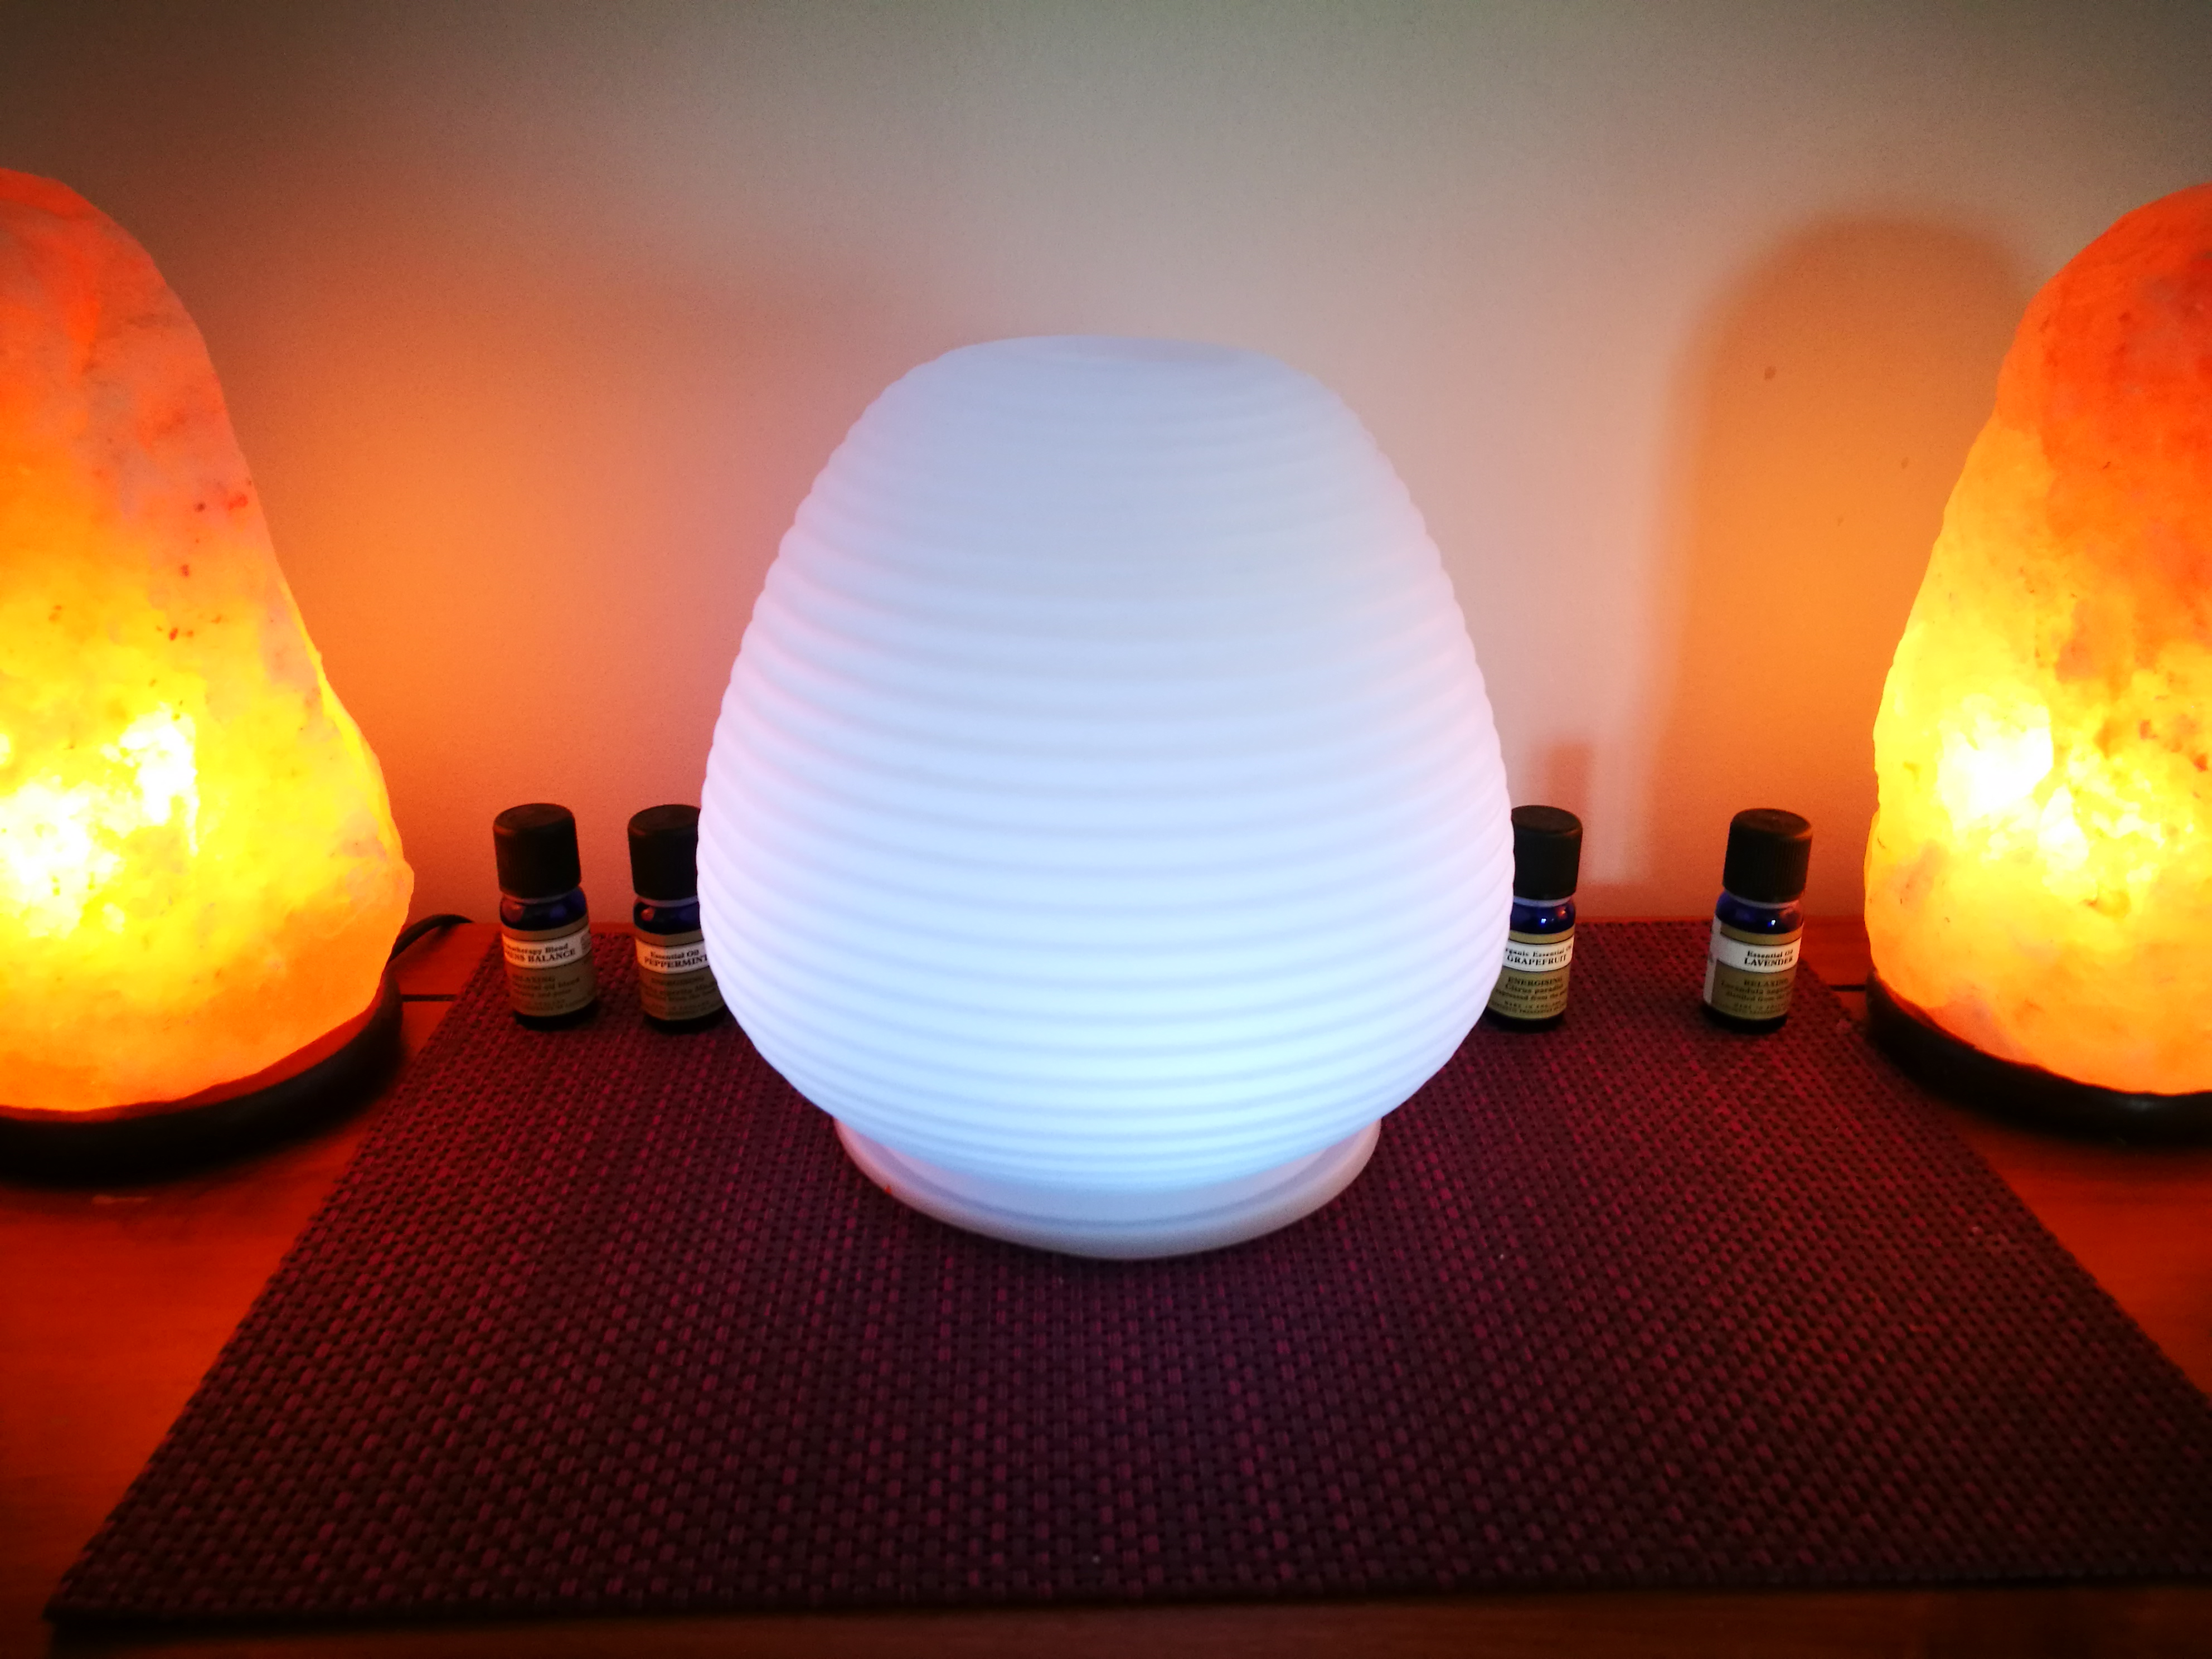 Aromatherapy and salt lamps for wellness in the home